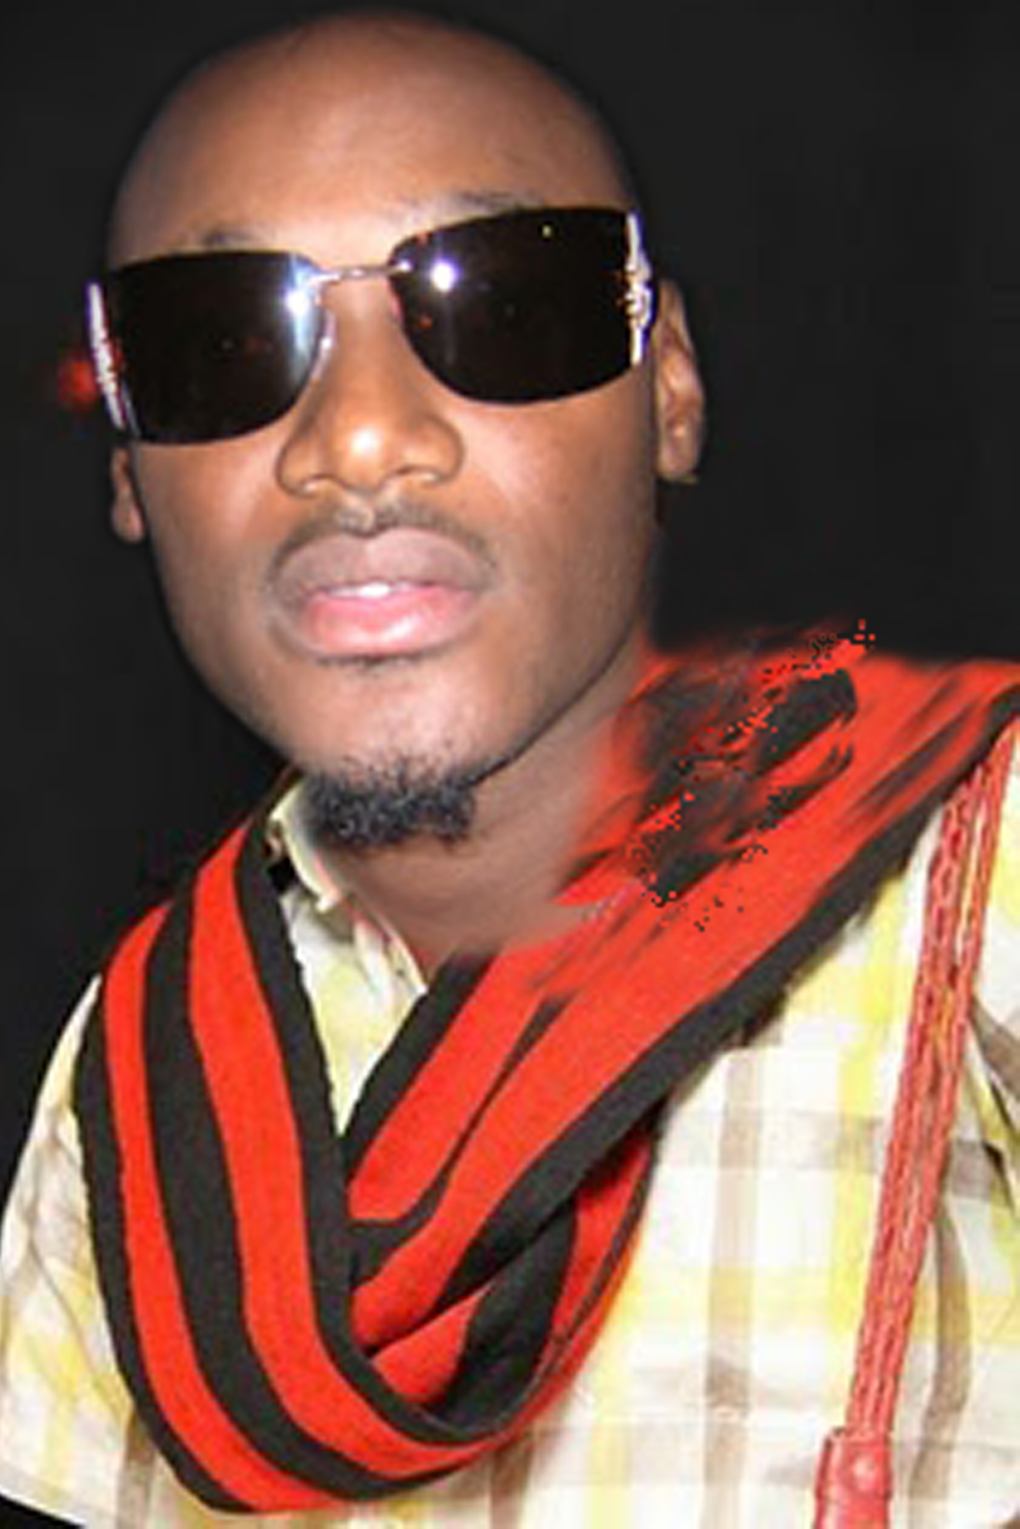 And vien 2face tetsola EMSFRICA'S BLOG: